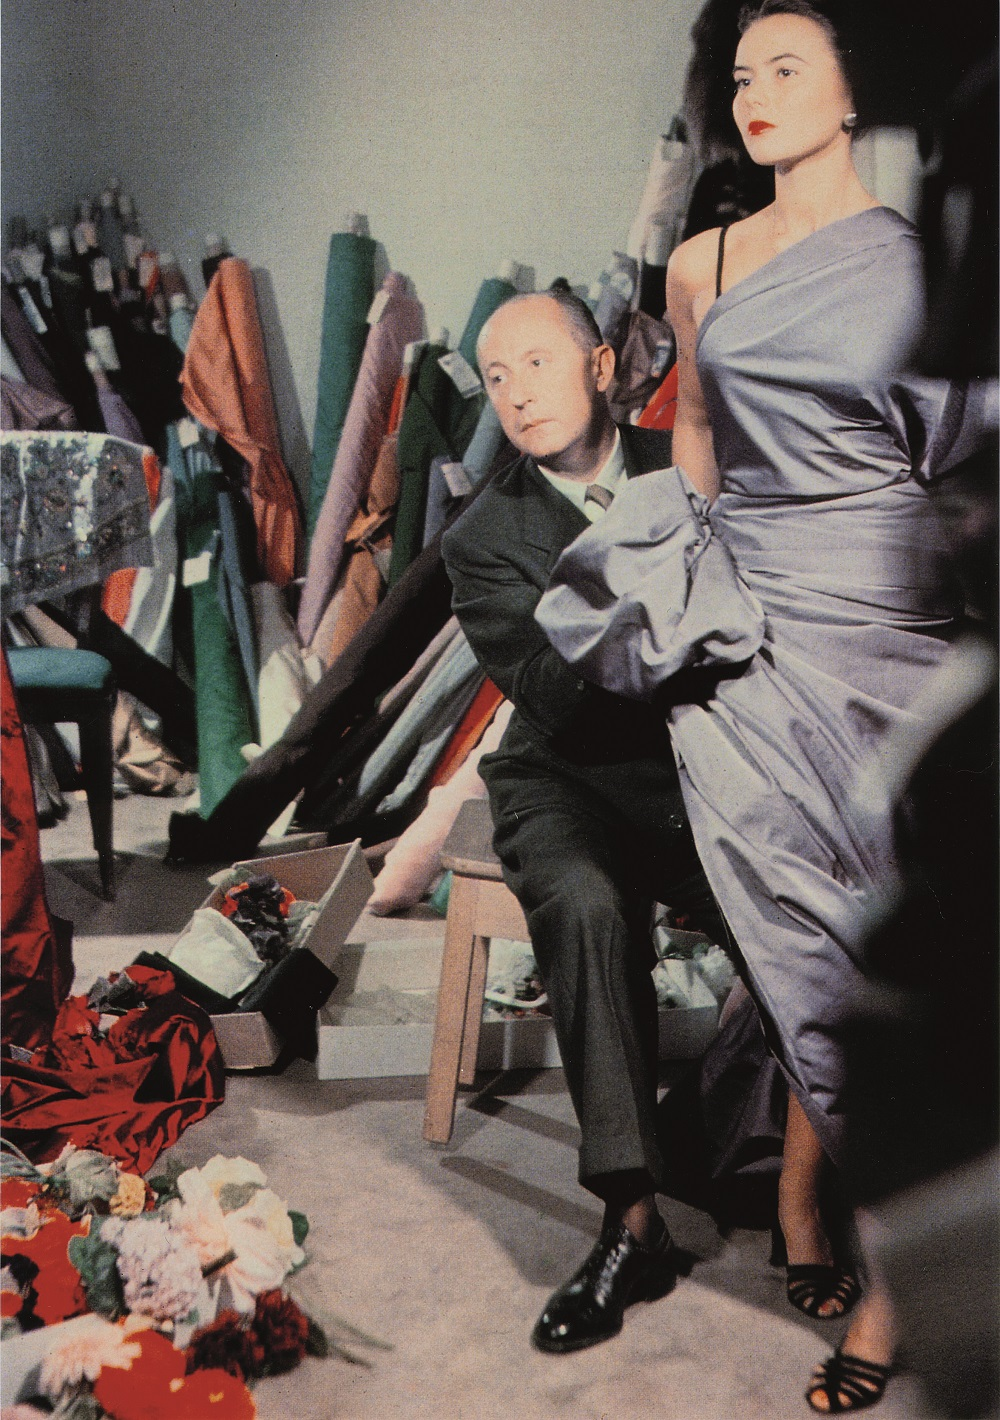 Christian Dior with model Sylvie, circa 1948 Courtesy of Christian Dior Silver Magazine www.silvermagazine.co.uk